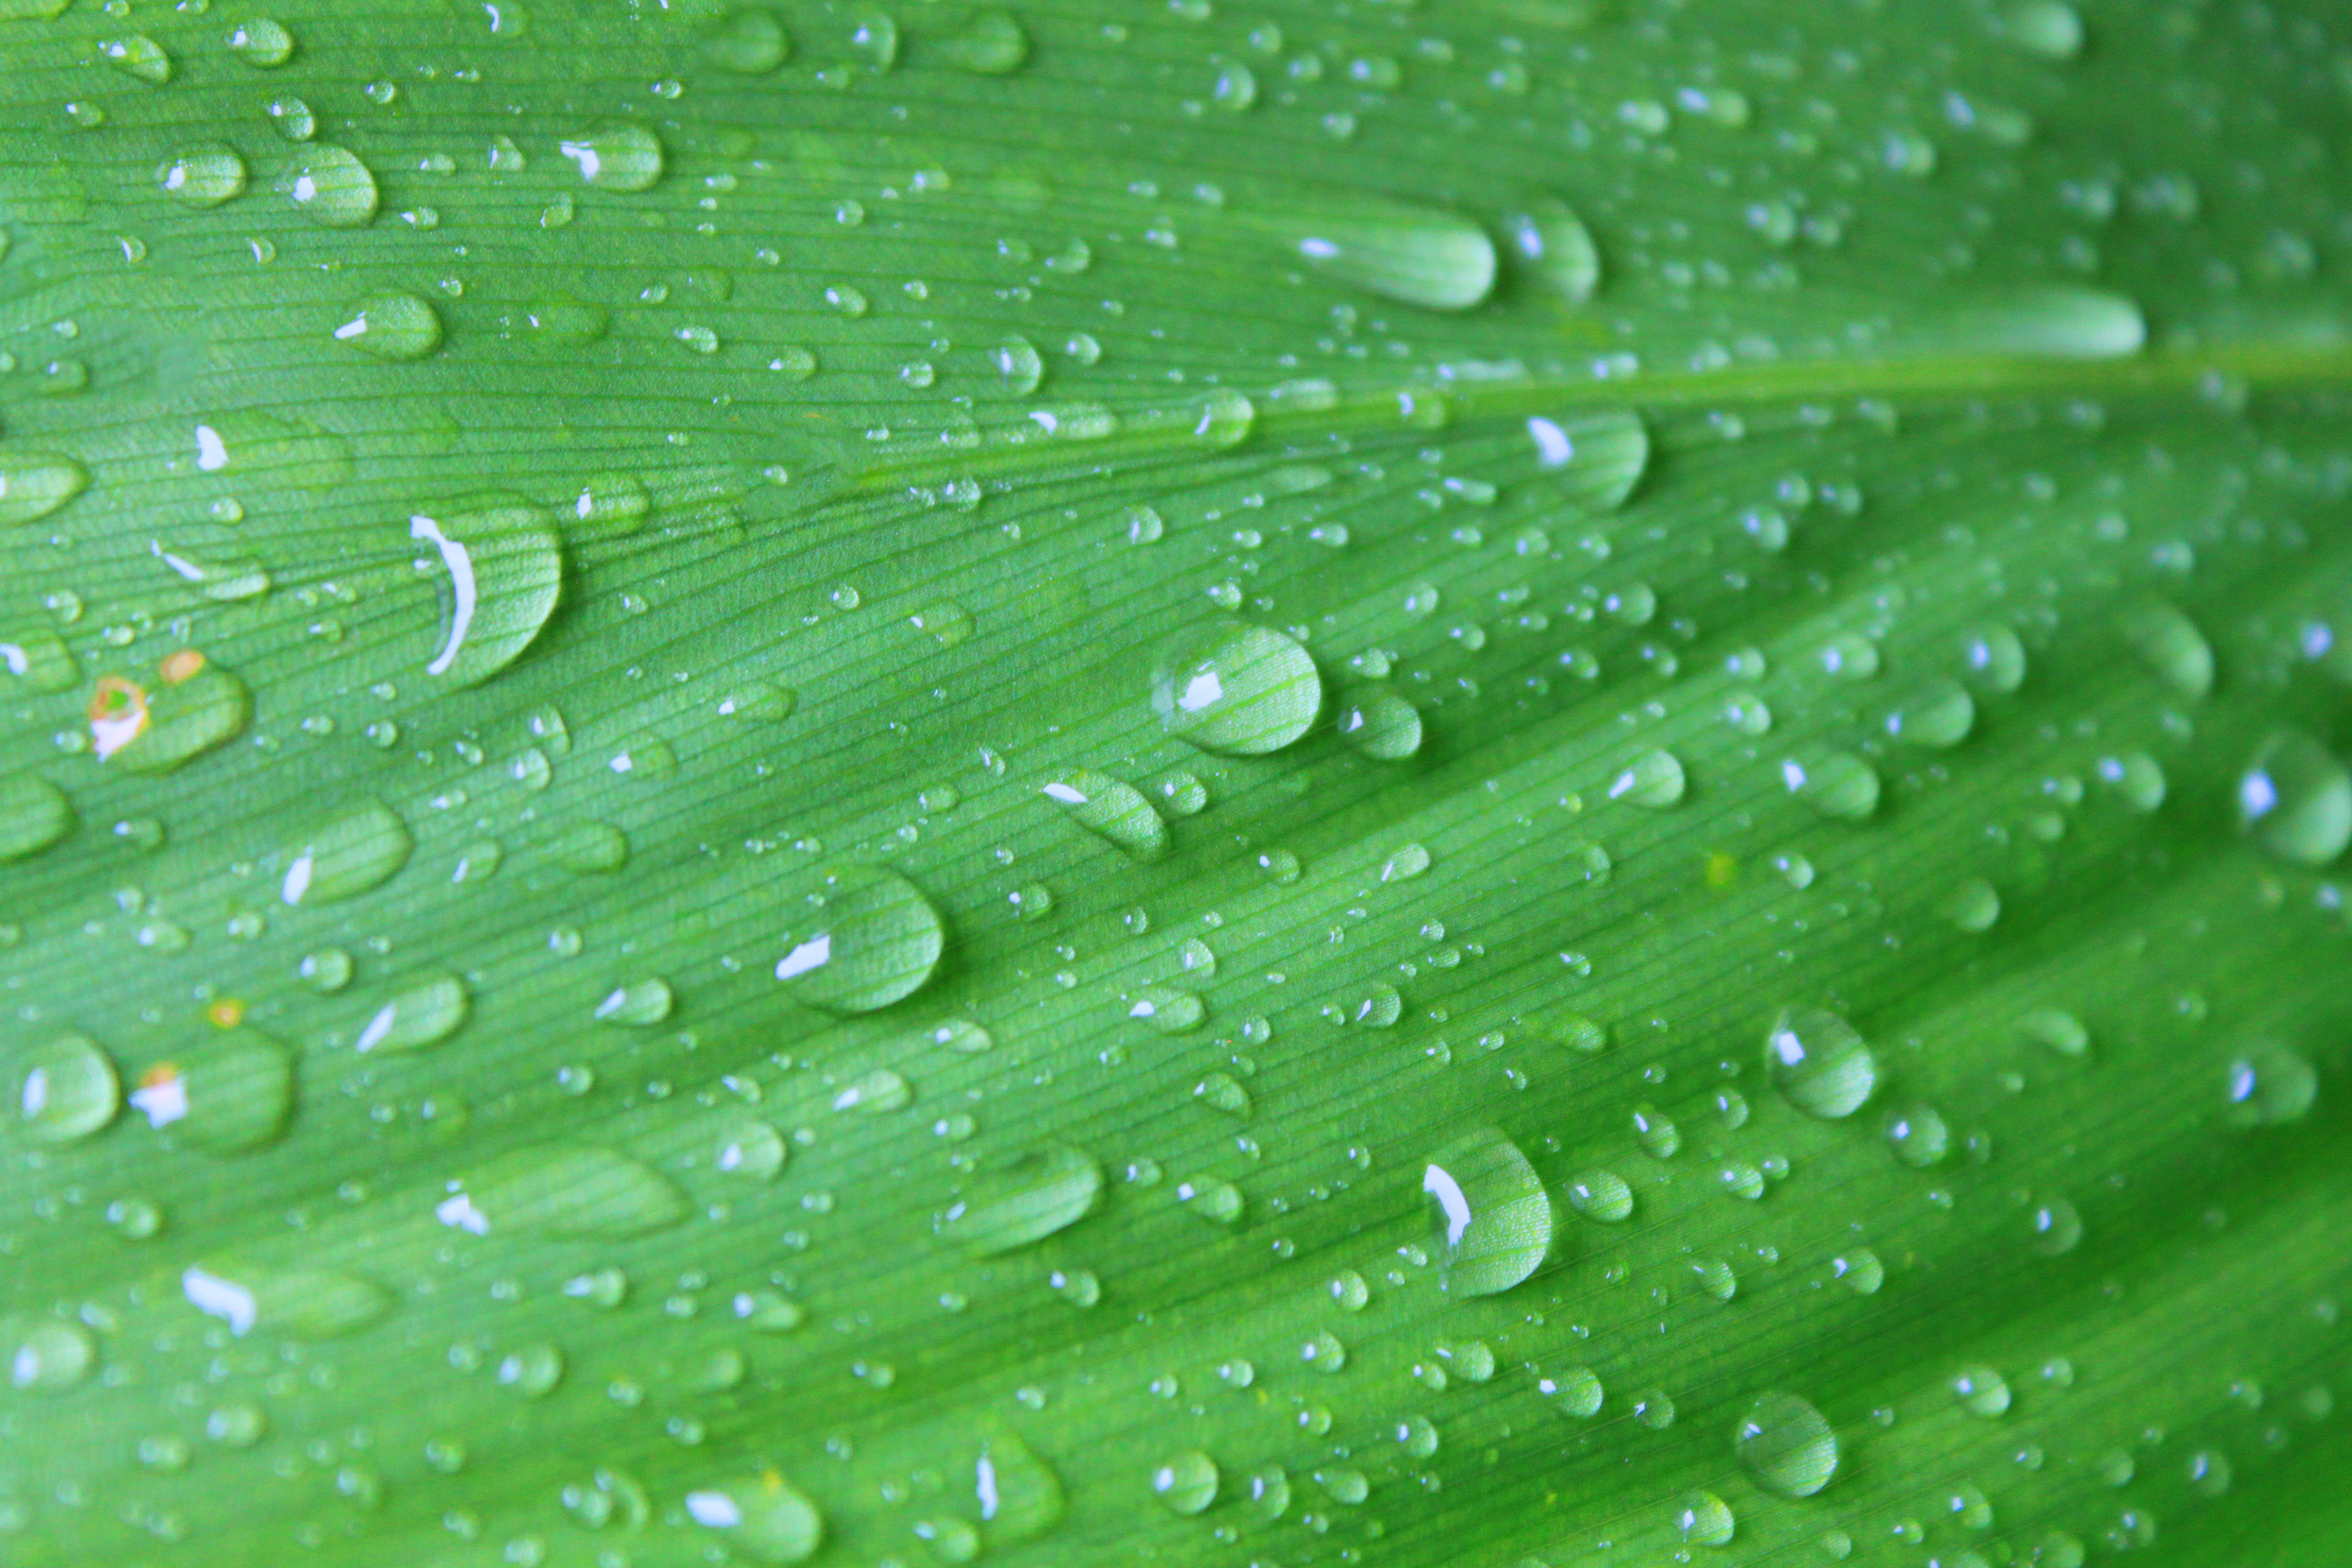 stockvault-large-leaf-after-rain127730